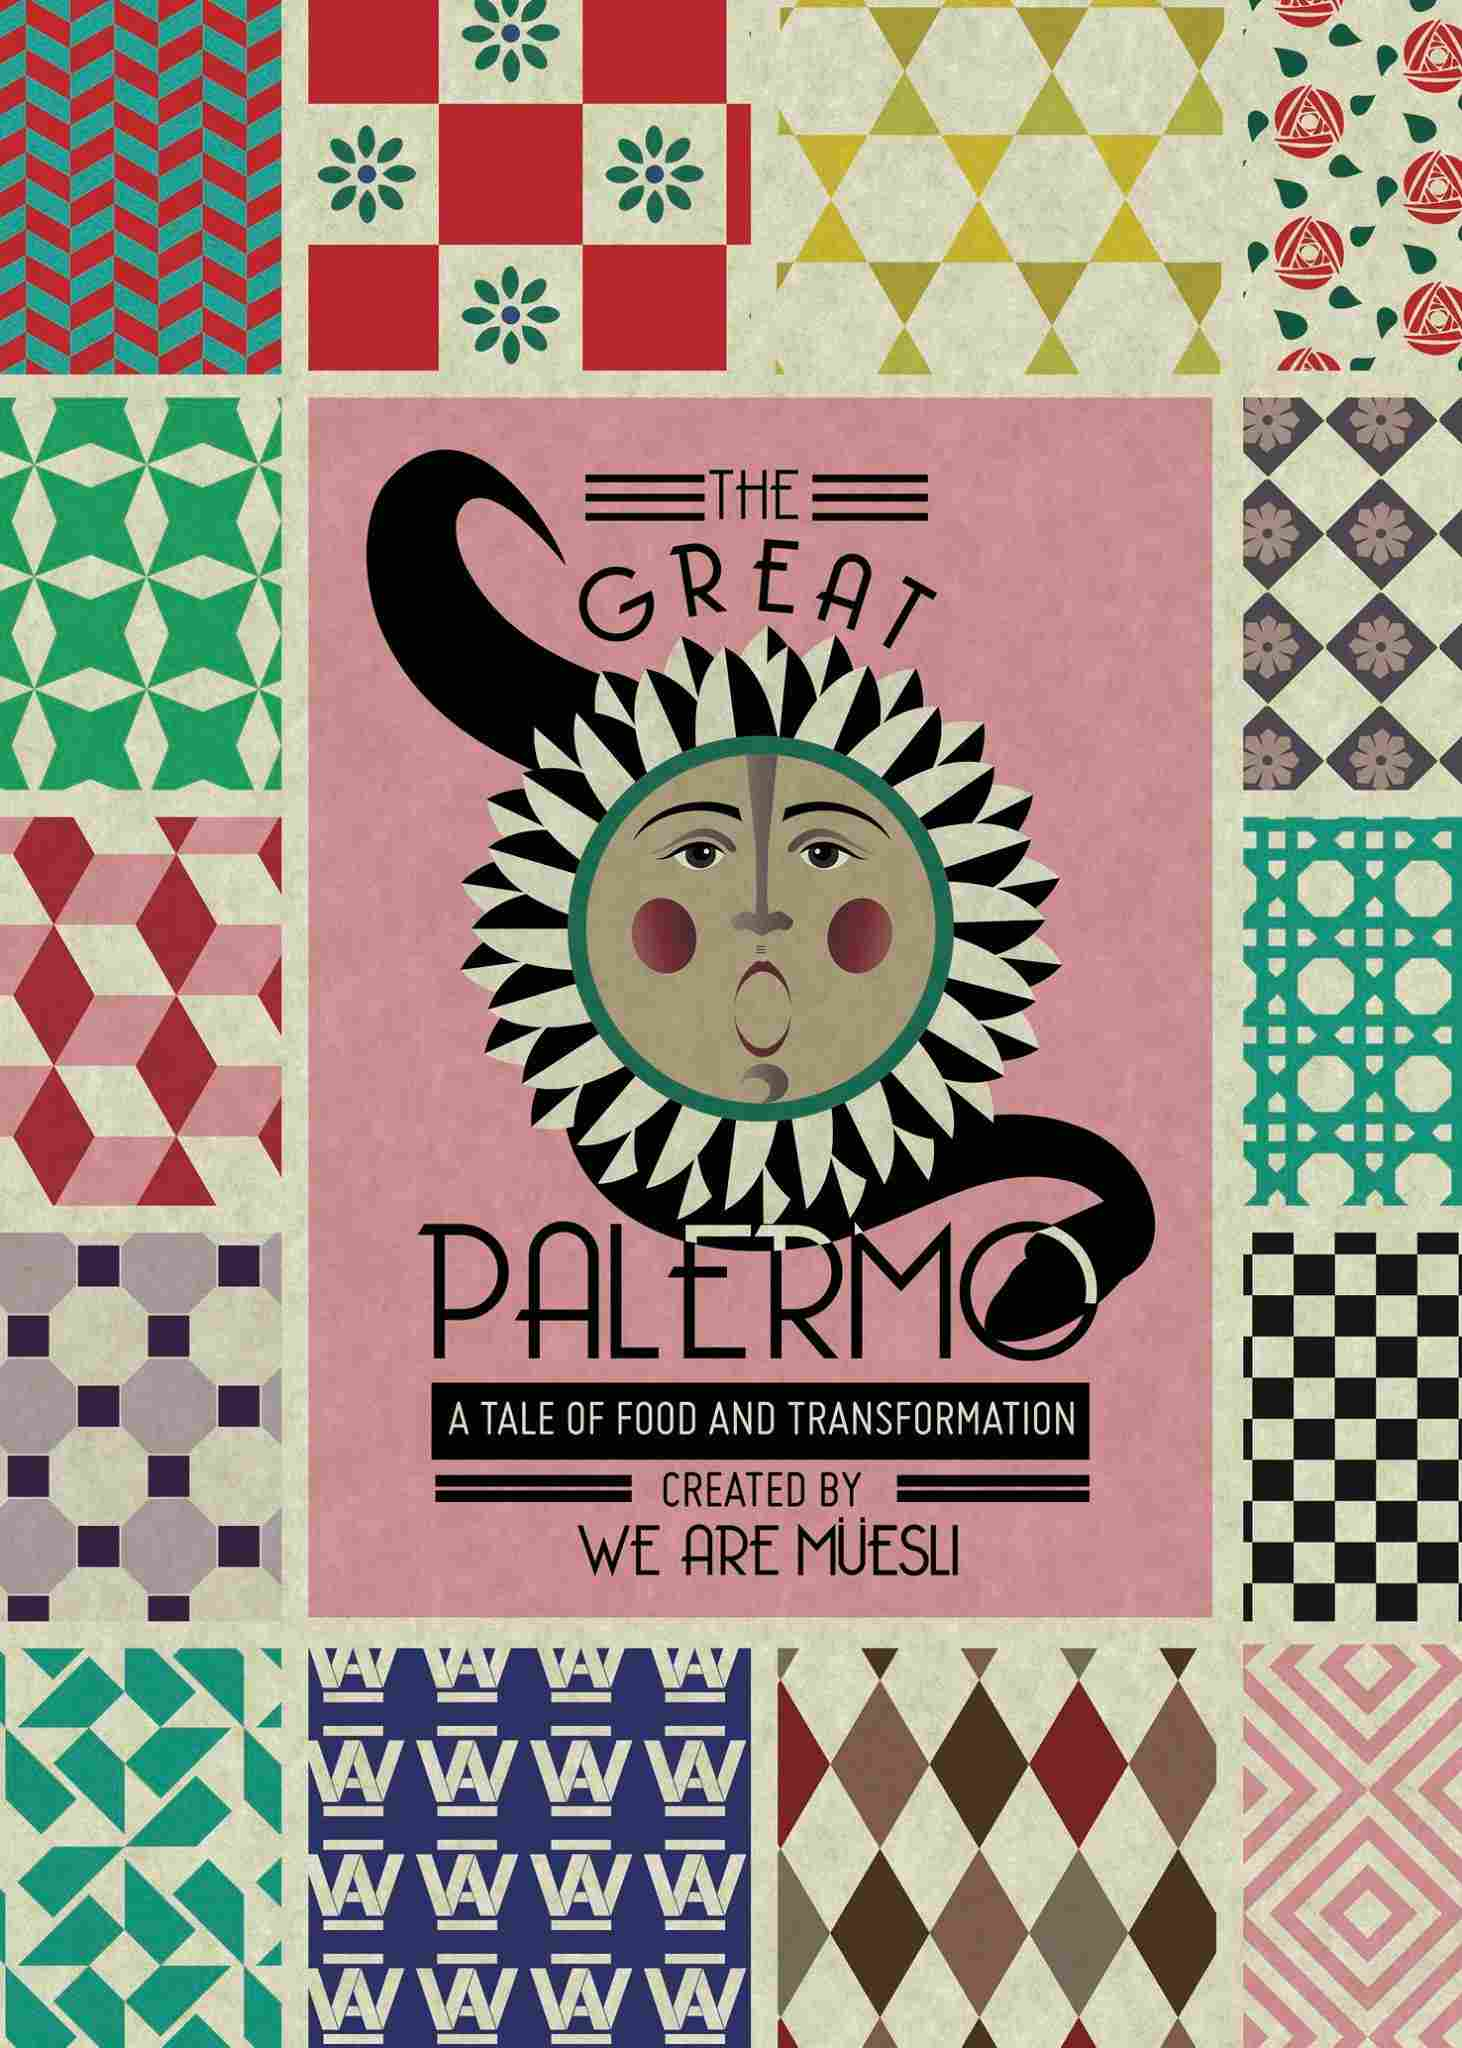 greatpalermo